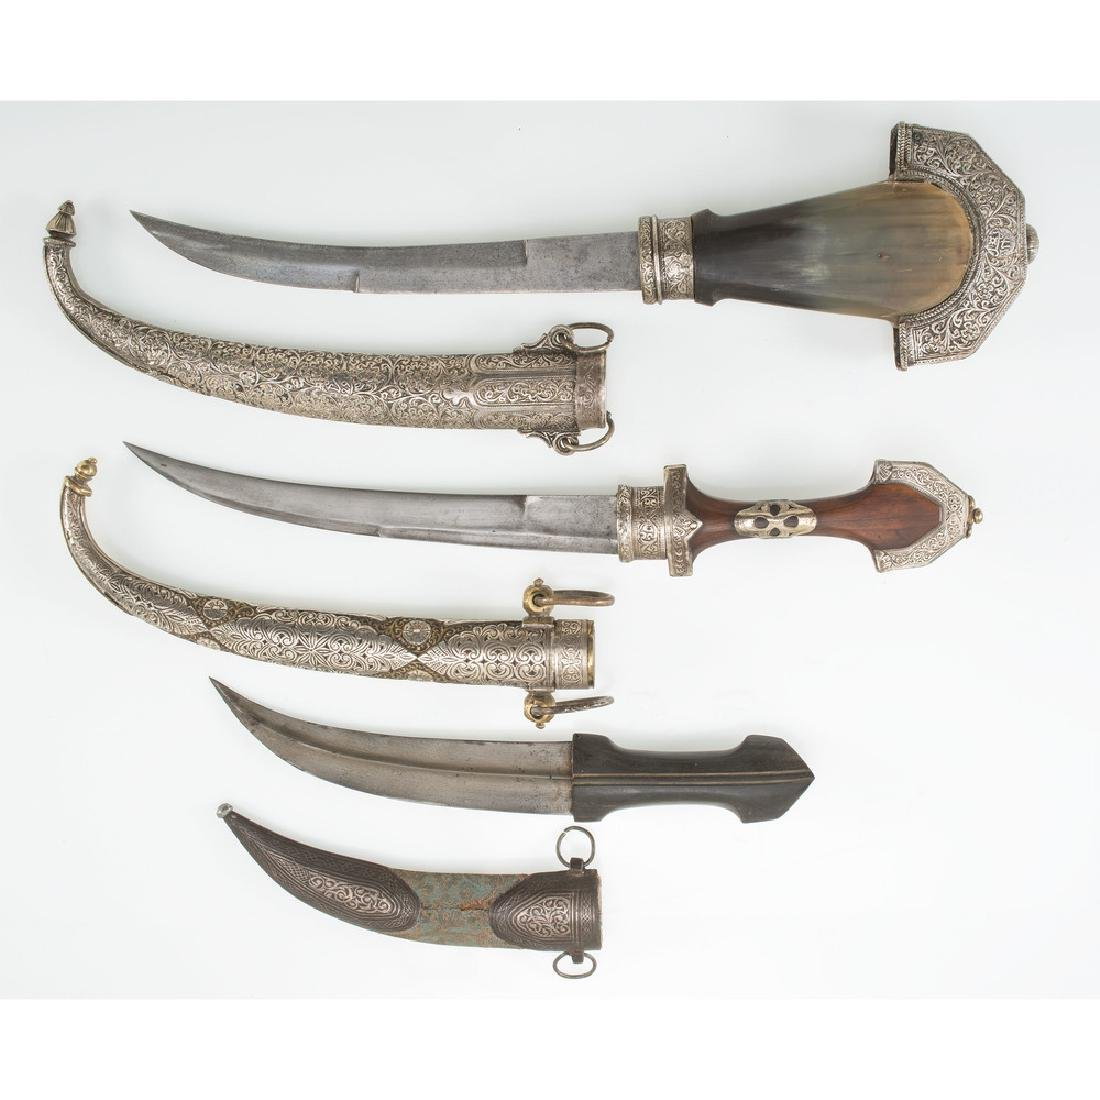 3 Curved Blade Moroccan Daggers - 3